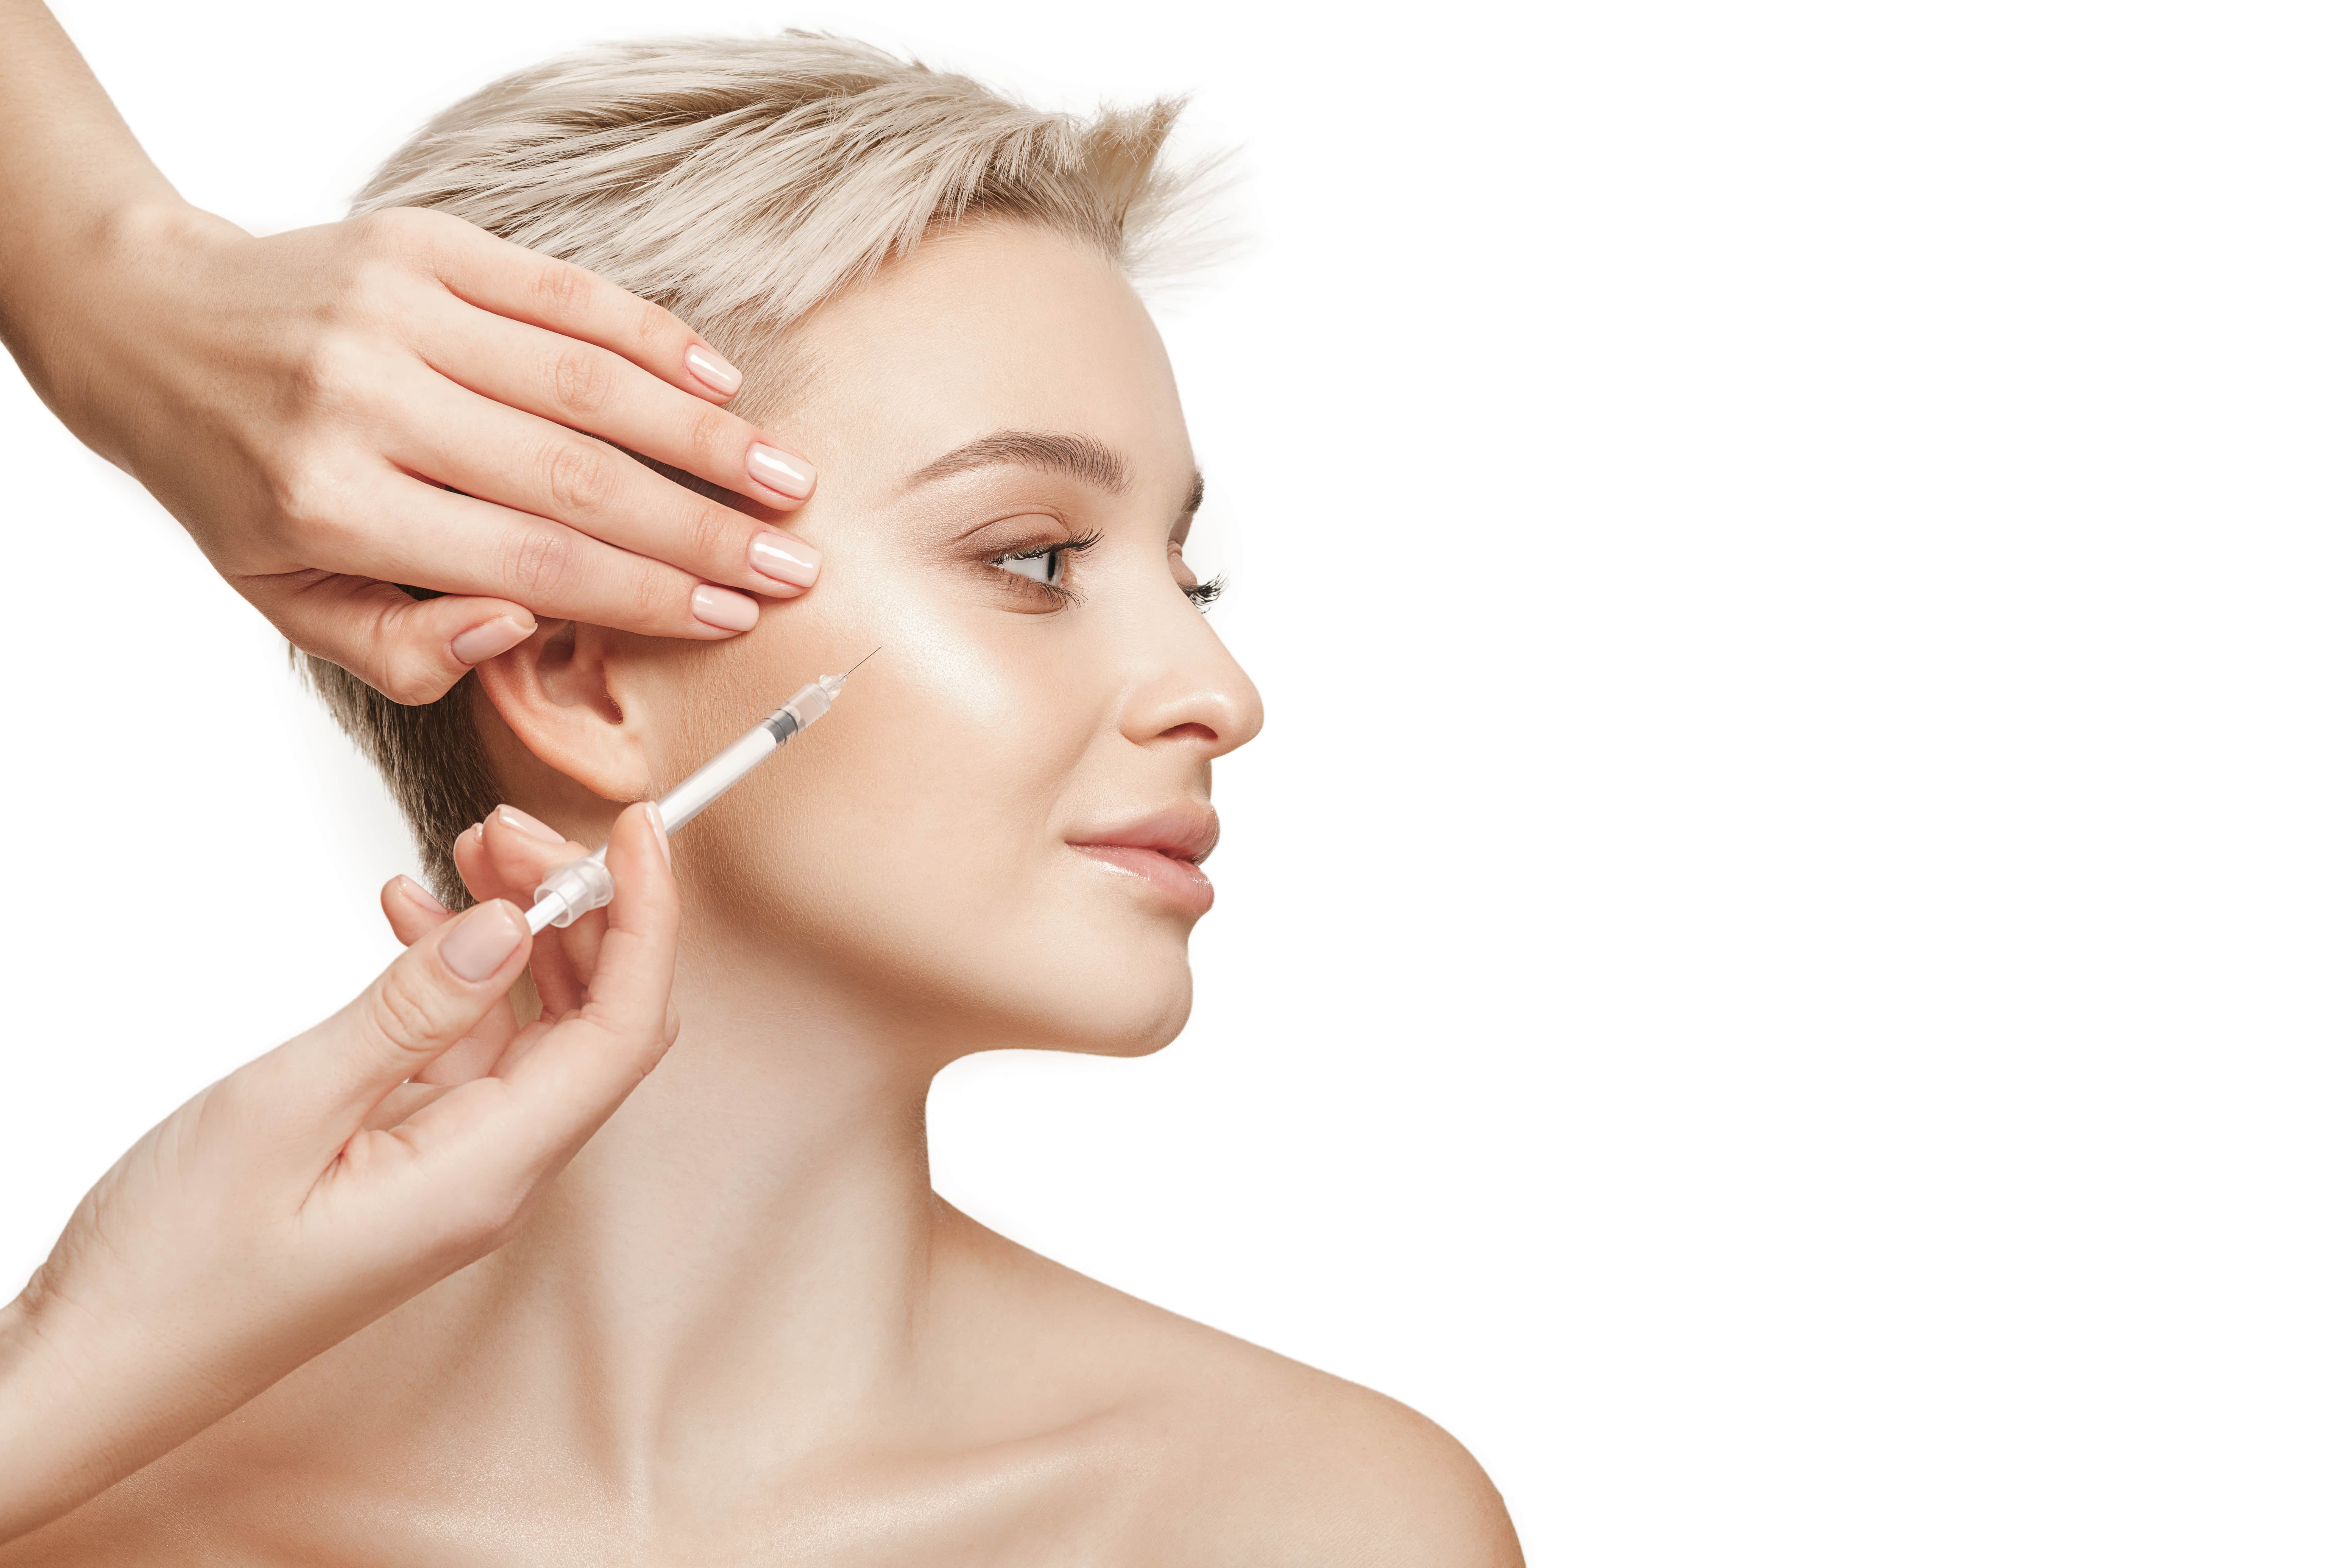 https://doctorhussein.com/wp-content/uploads/2021/09/people-lips-cosmetology-plastic-surgery-beauty-concept-beautiful-young-woman-face-hand-with-syringe-making-injection-min.jpg